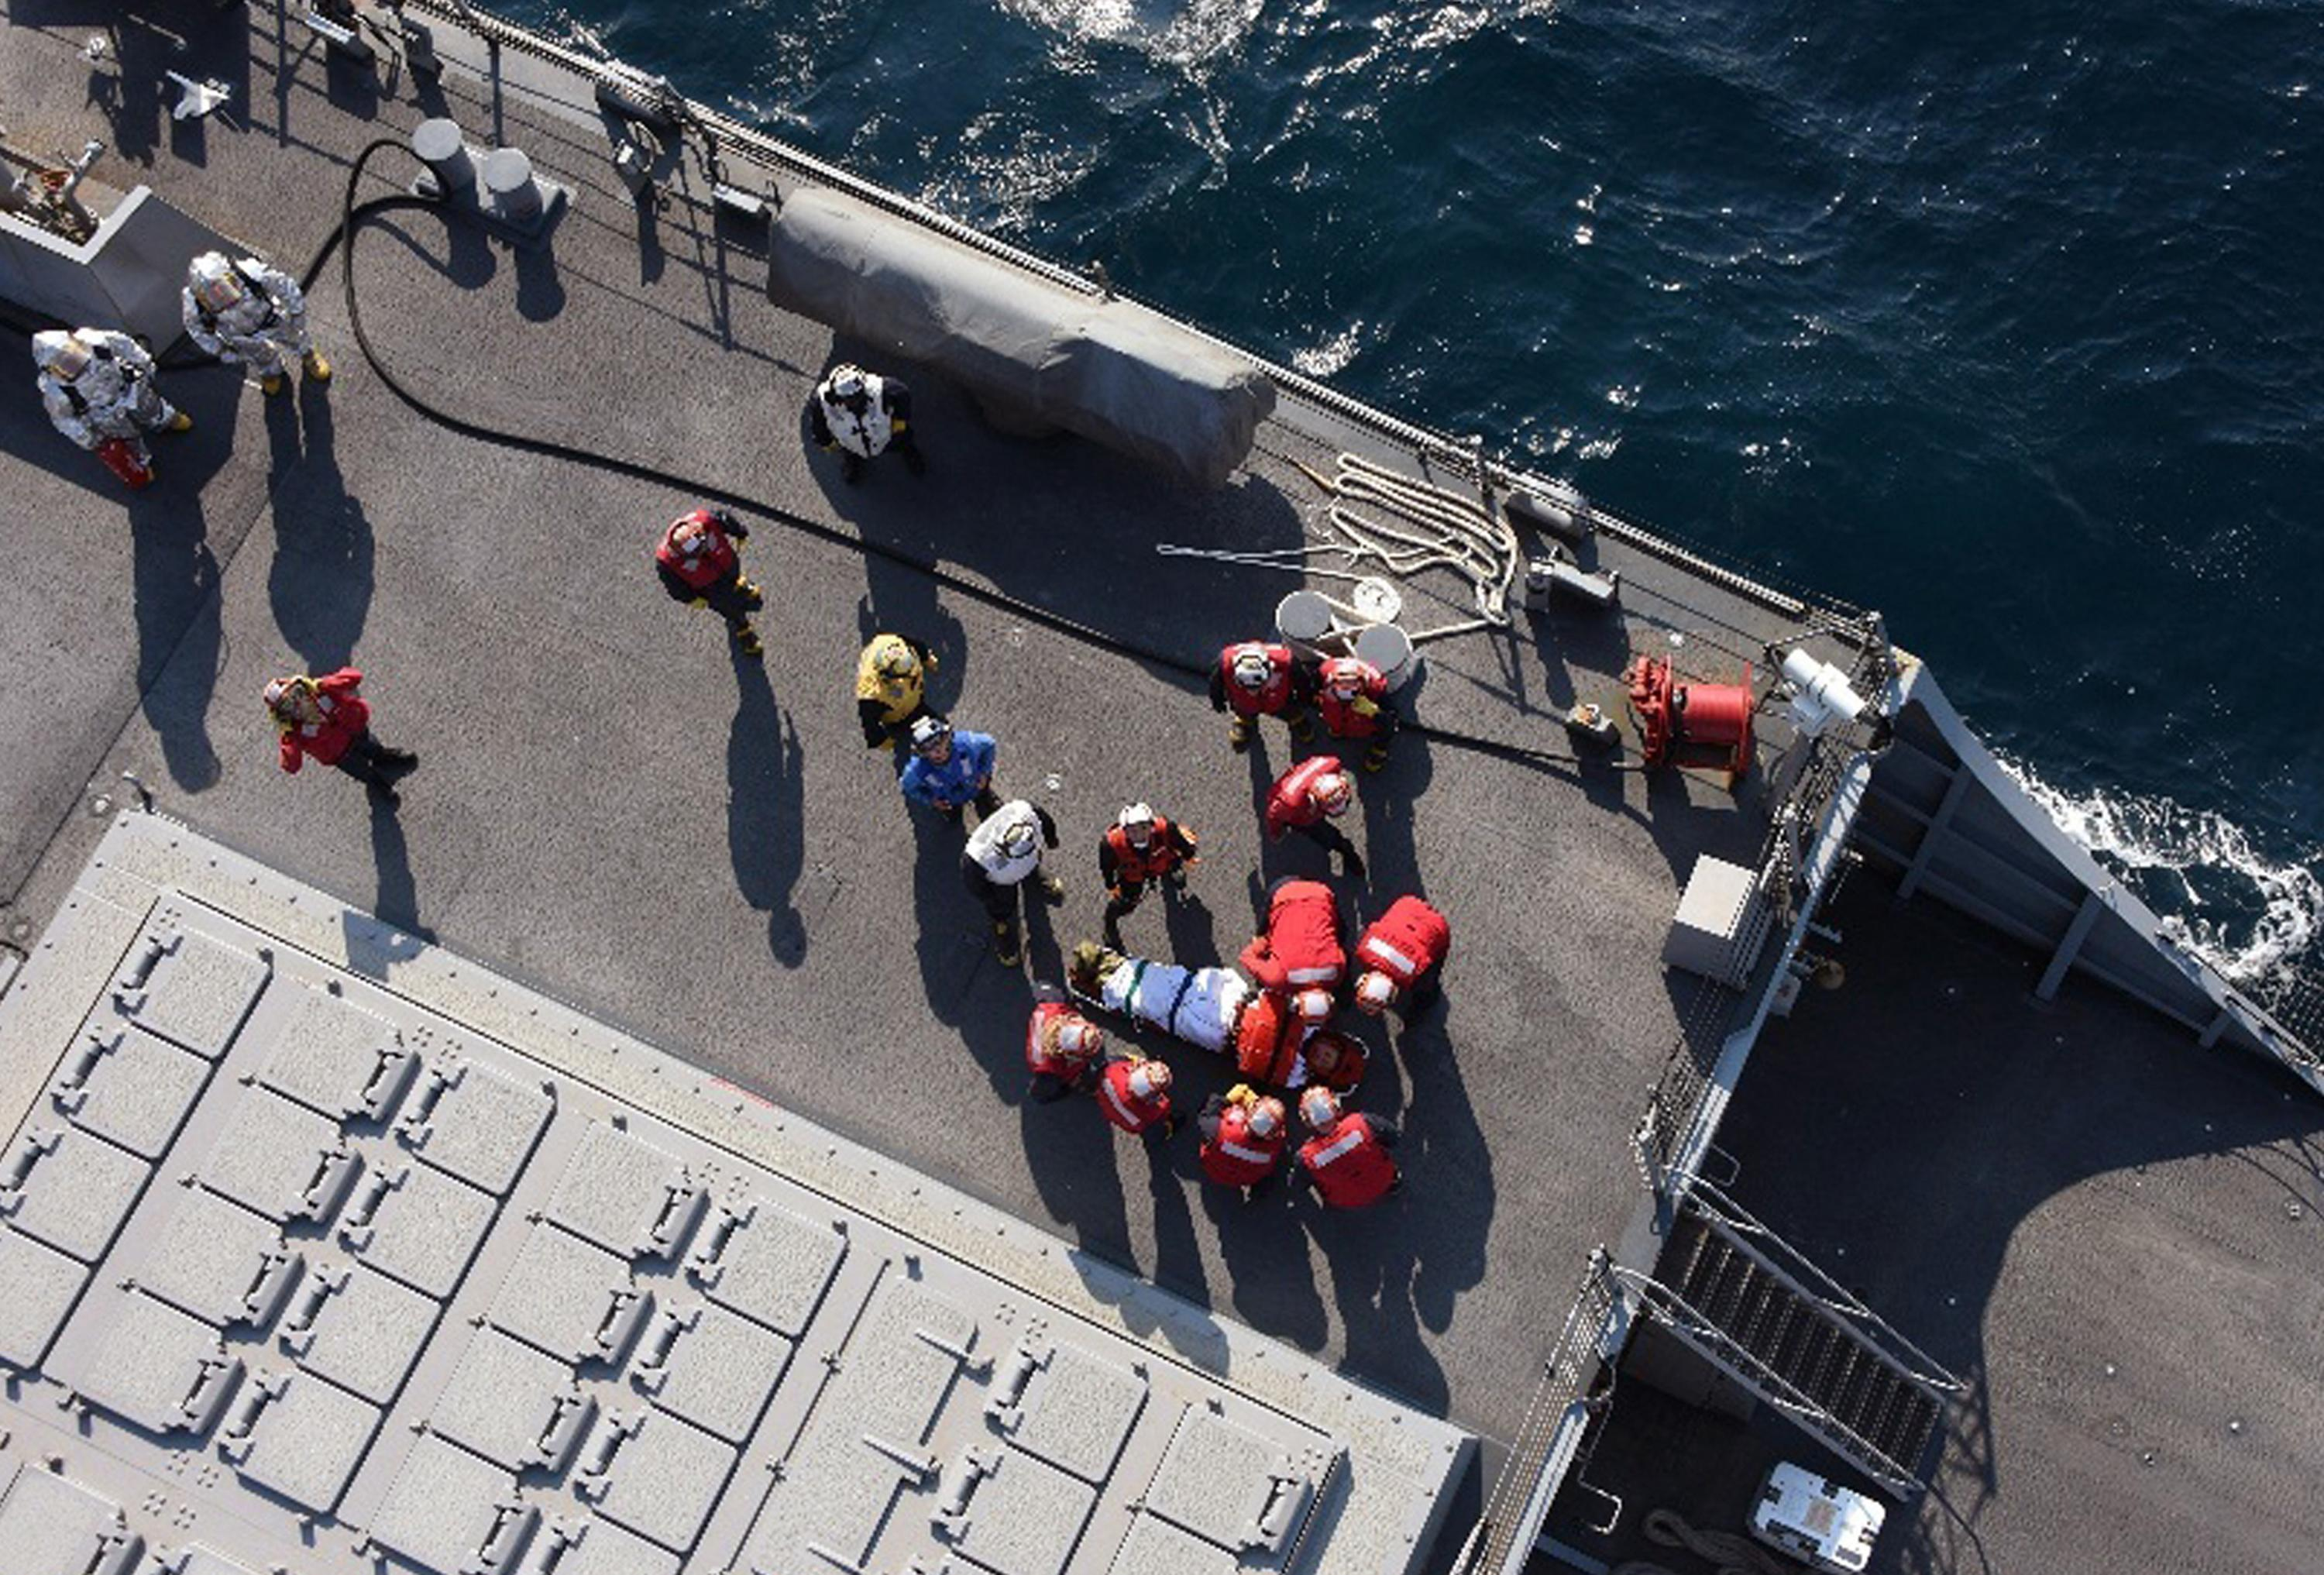 U.S. military personnel prepare to transfer an injured on board USS Fitzgerald, off Izu Peninsula,  Japan, after the Navy destroyer collided with a merchant ship, Saturday,  June 17, 2017.  The Japan coast guard said it received an emergency call from a Philippine-registered container ship ACX Crystal early Saturday that it had collided with the Fitzgerald southwest of Yokusuka, Japan. (Japan's Defense Ministry via AP)